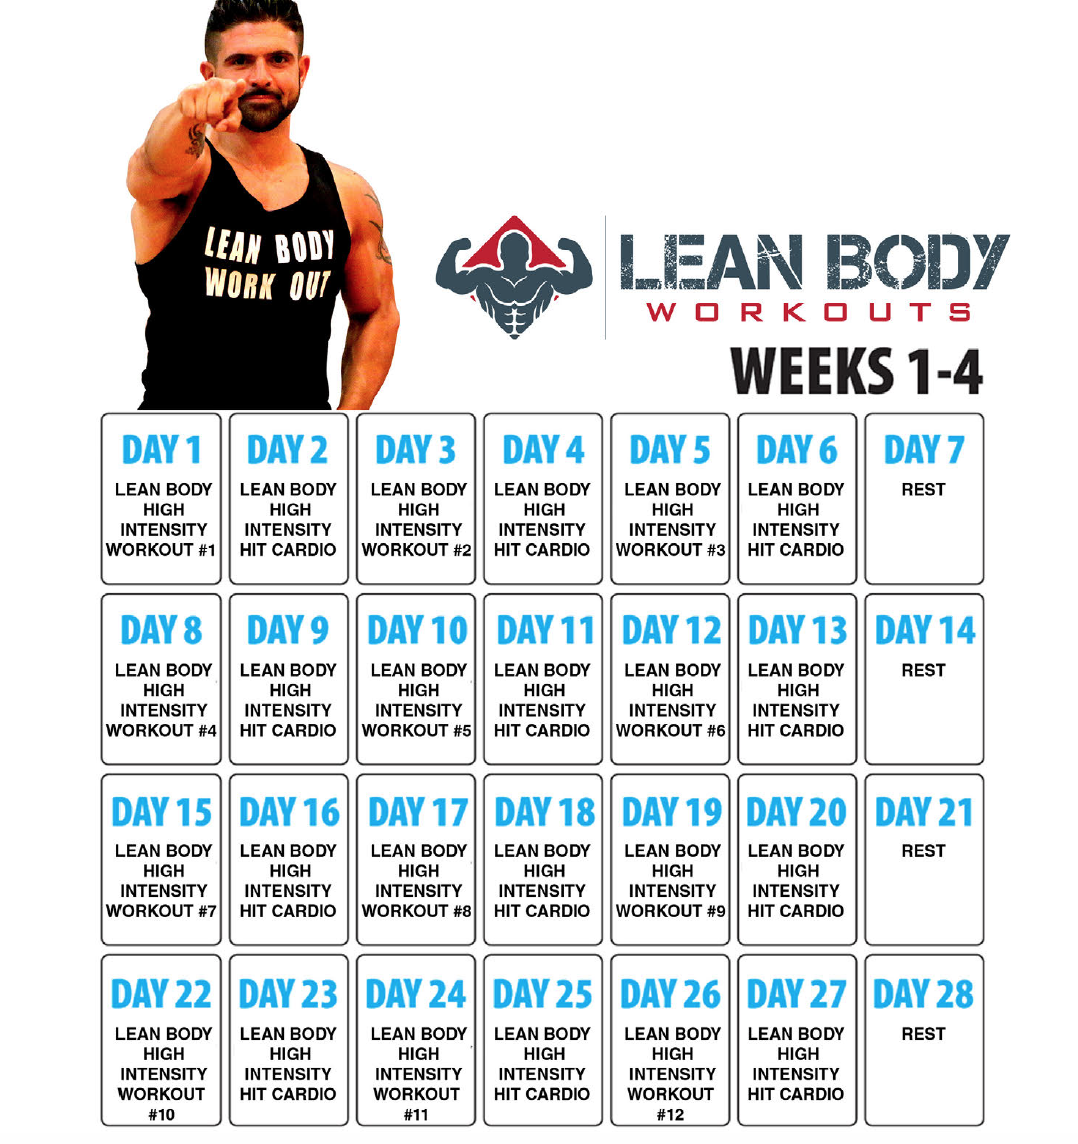 Gym Schedule For Lean Body